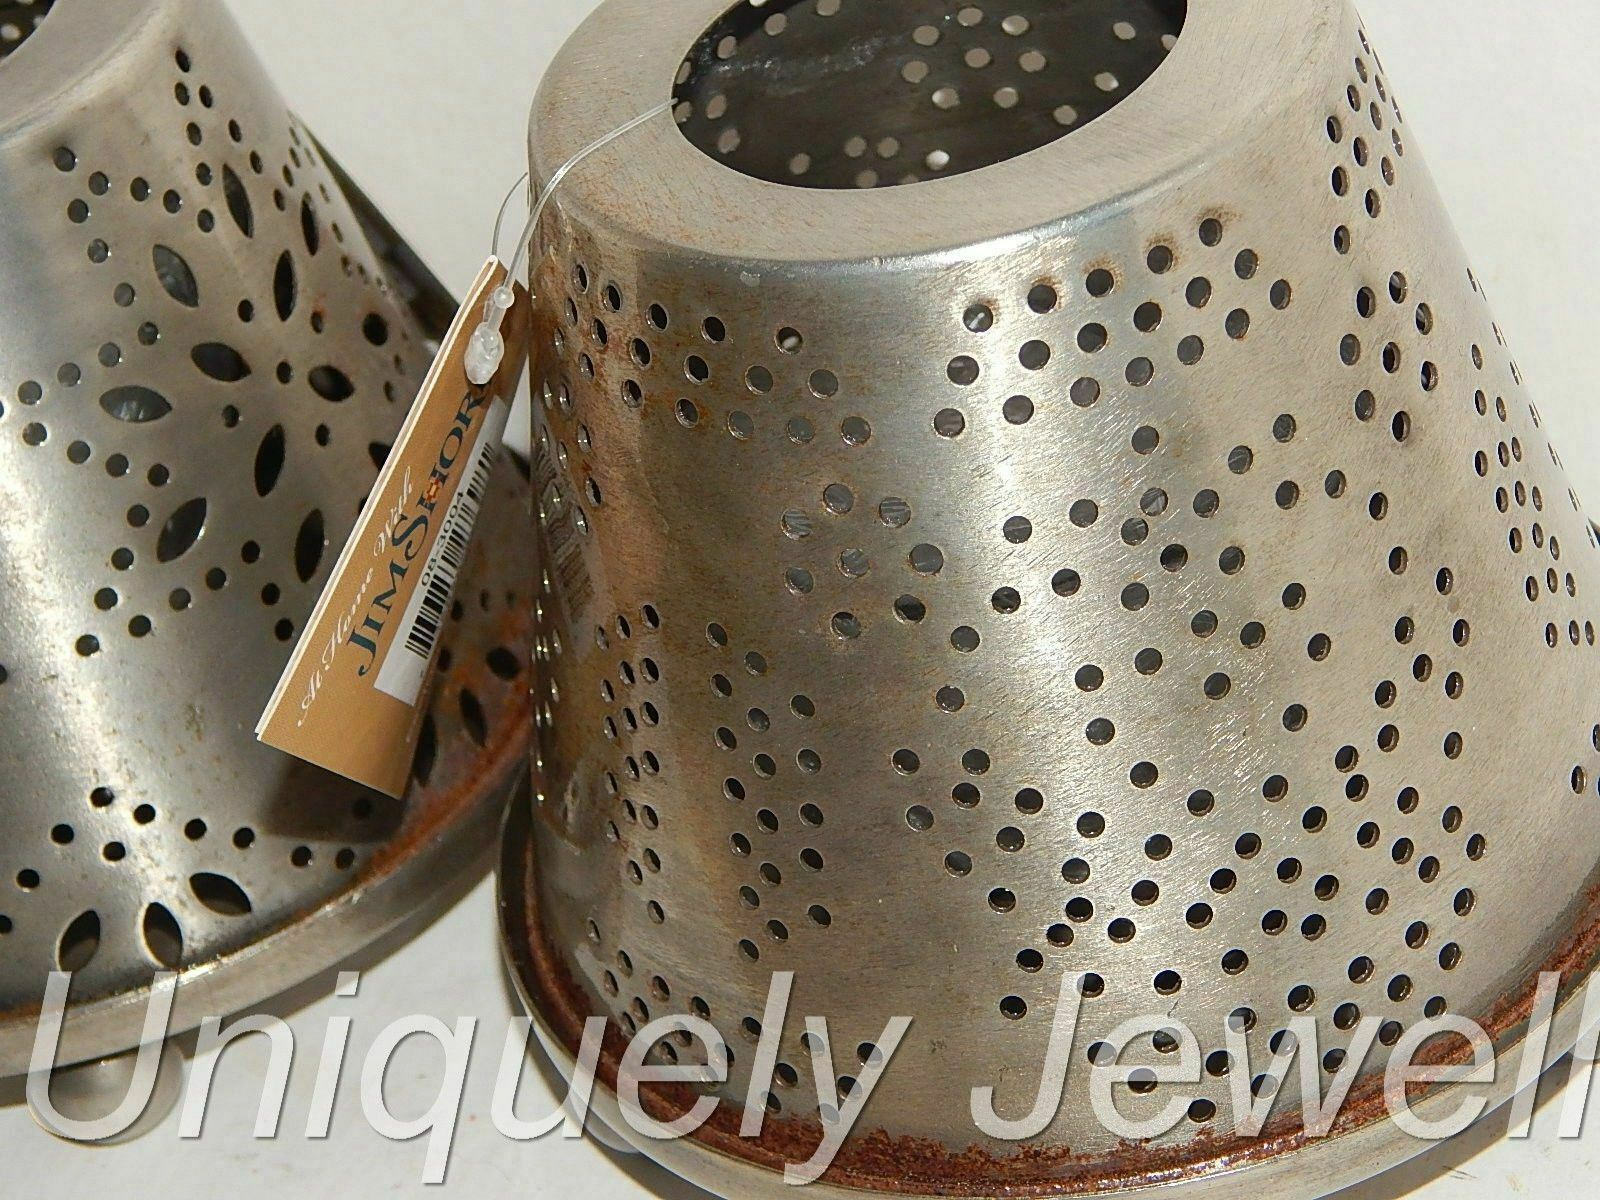 Jim Shore Distressed Metal 3 PC Votive Candle Holders Punched Tin Look (2)